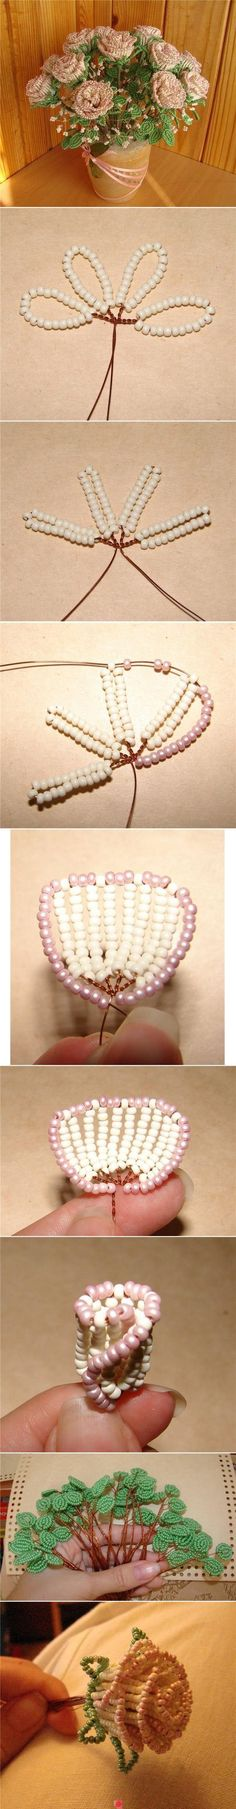 DIY Bead Roses Bouquet flowers diy crafts home made easy crafts craft idea crafts ideas diy ideas diy crafts diy idea do it yourself diy projects diy roses Beading Projects, Beading Tutorials, Beading Patterns, Diy Projects, Free Tutorials, Craft Tutorials, Flower Crafts, Diy Flowers, Fabric Flowers